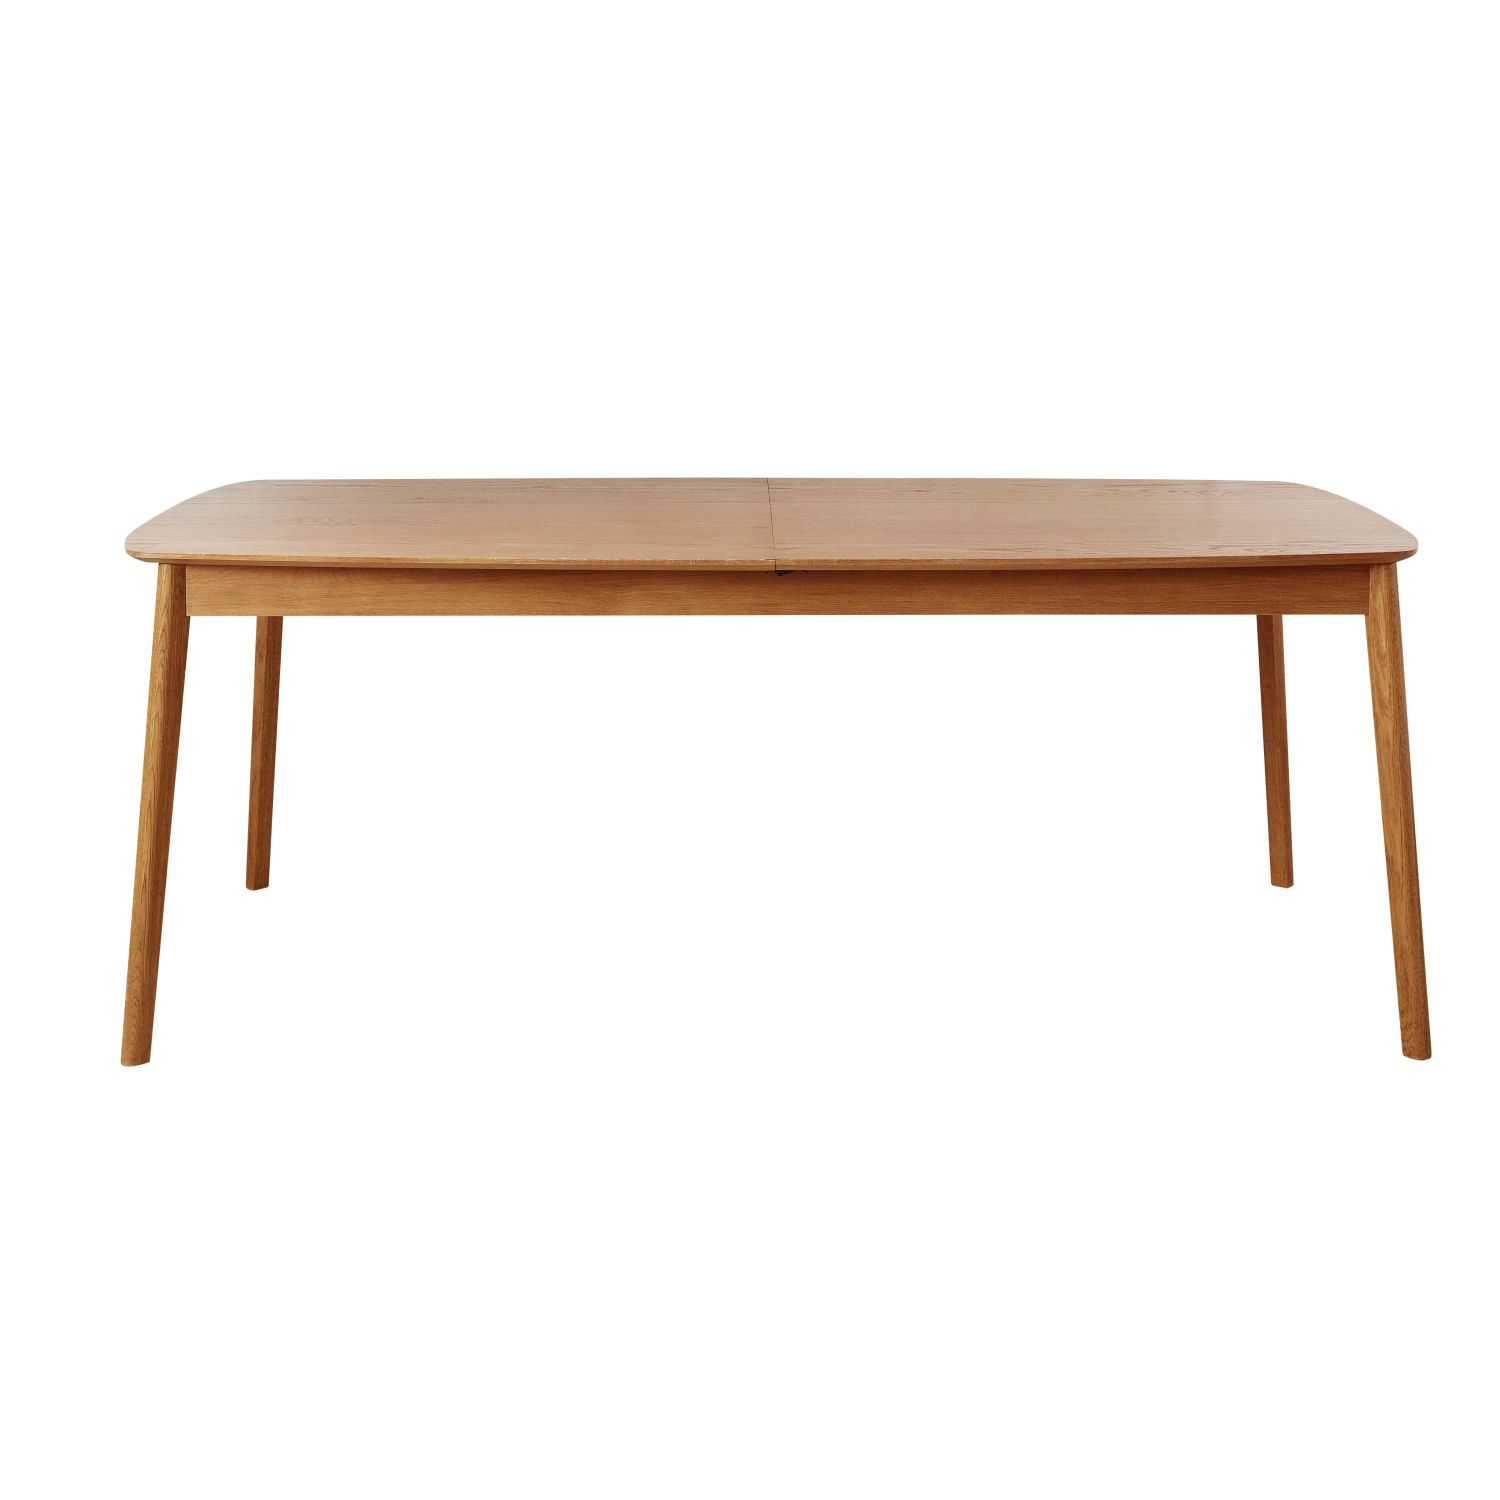 Table A Manger 2 Personnes Génial Oak Extendible 8 12 Seater Dining Table W 200 300 Cm In 2019 Of 24 Beau Table A Manger 2 Personnes